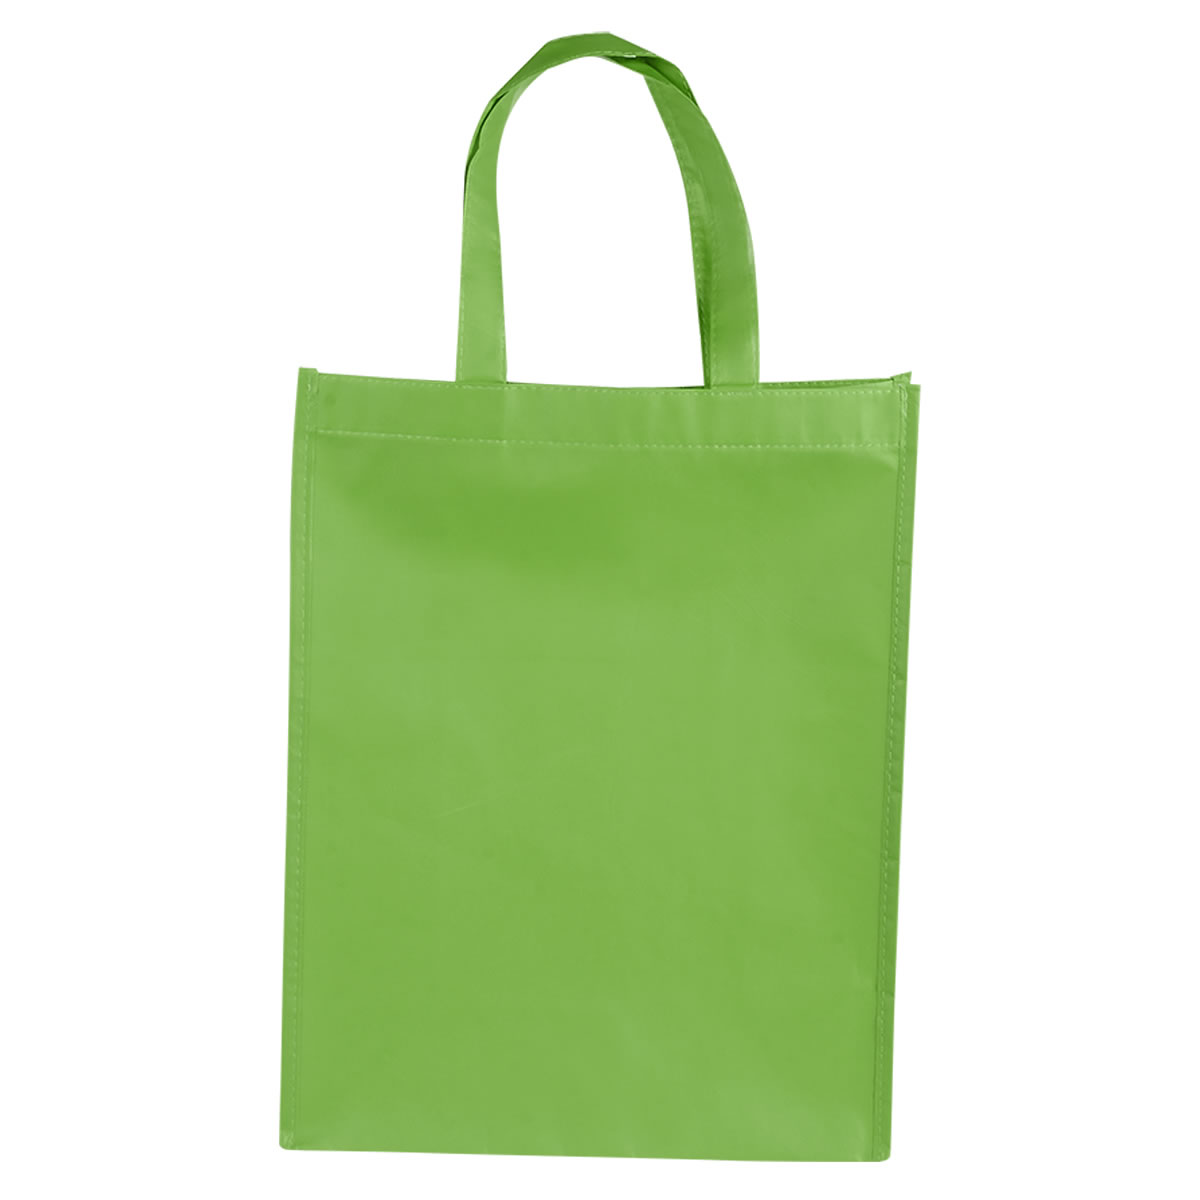 BOLSA AVERY COLOR VERDE